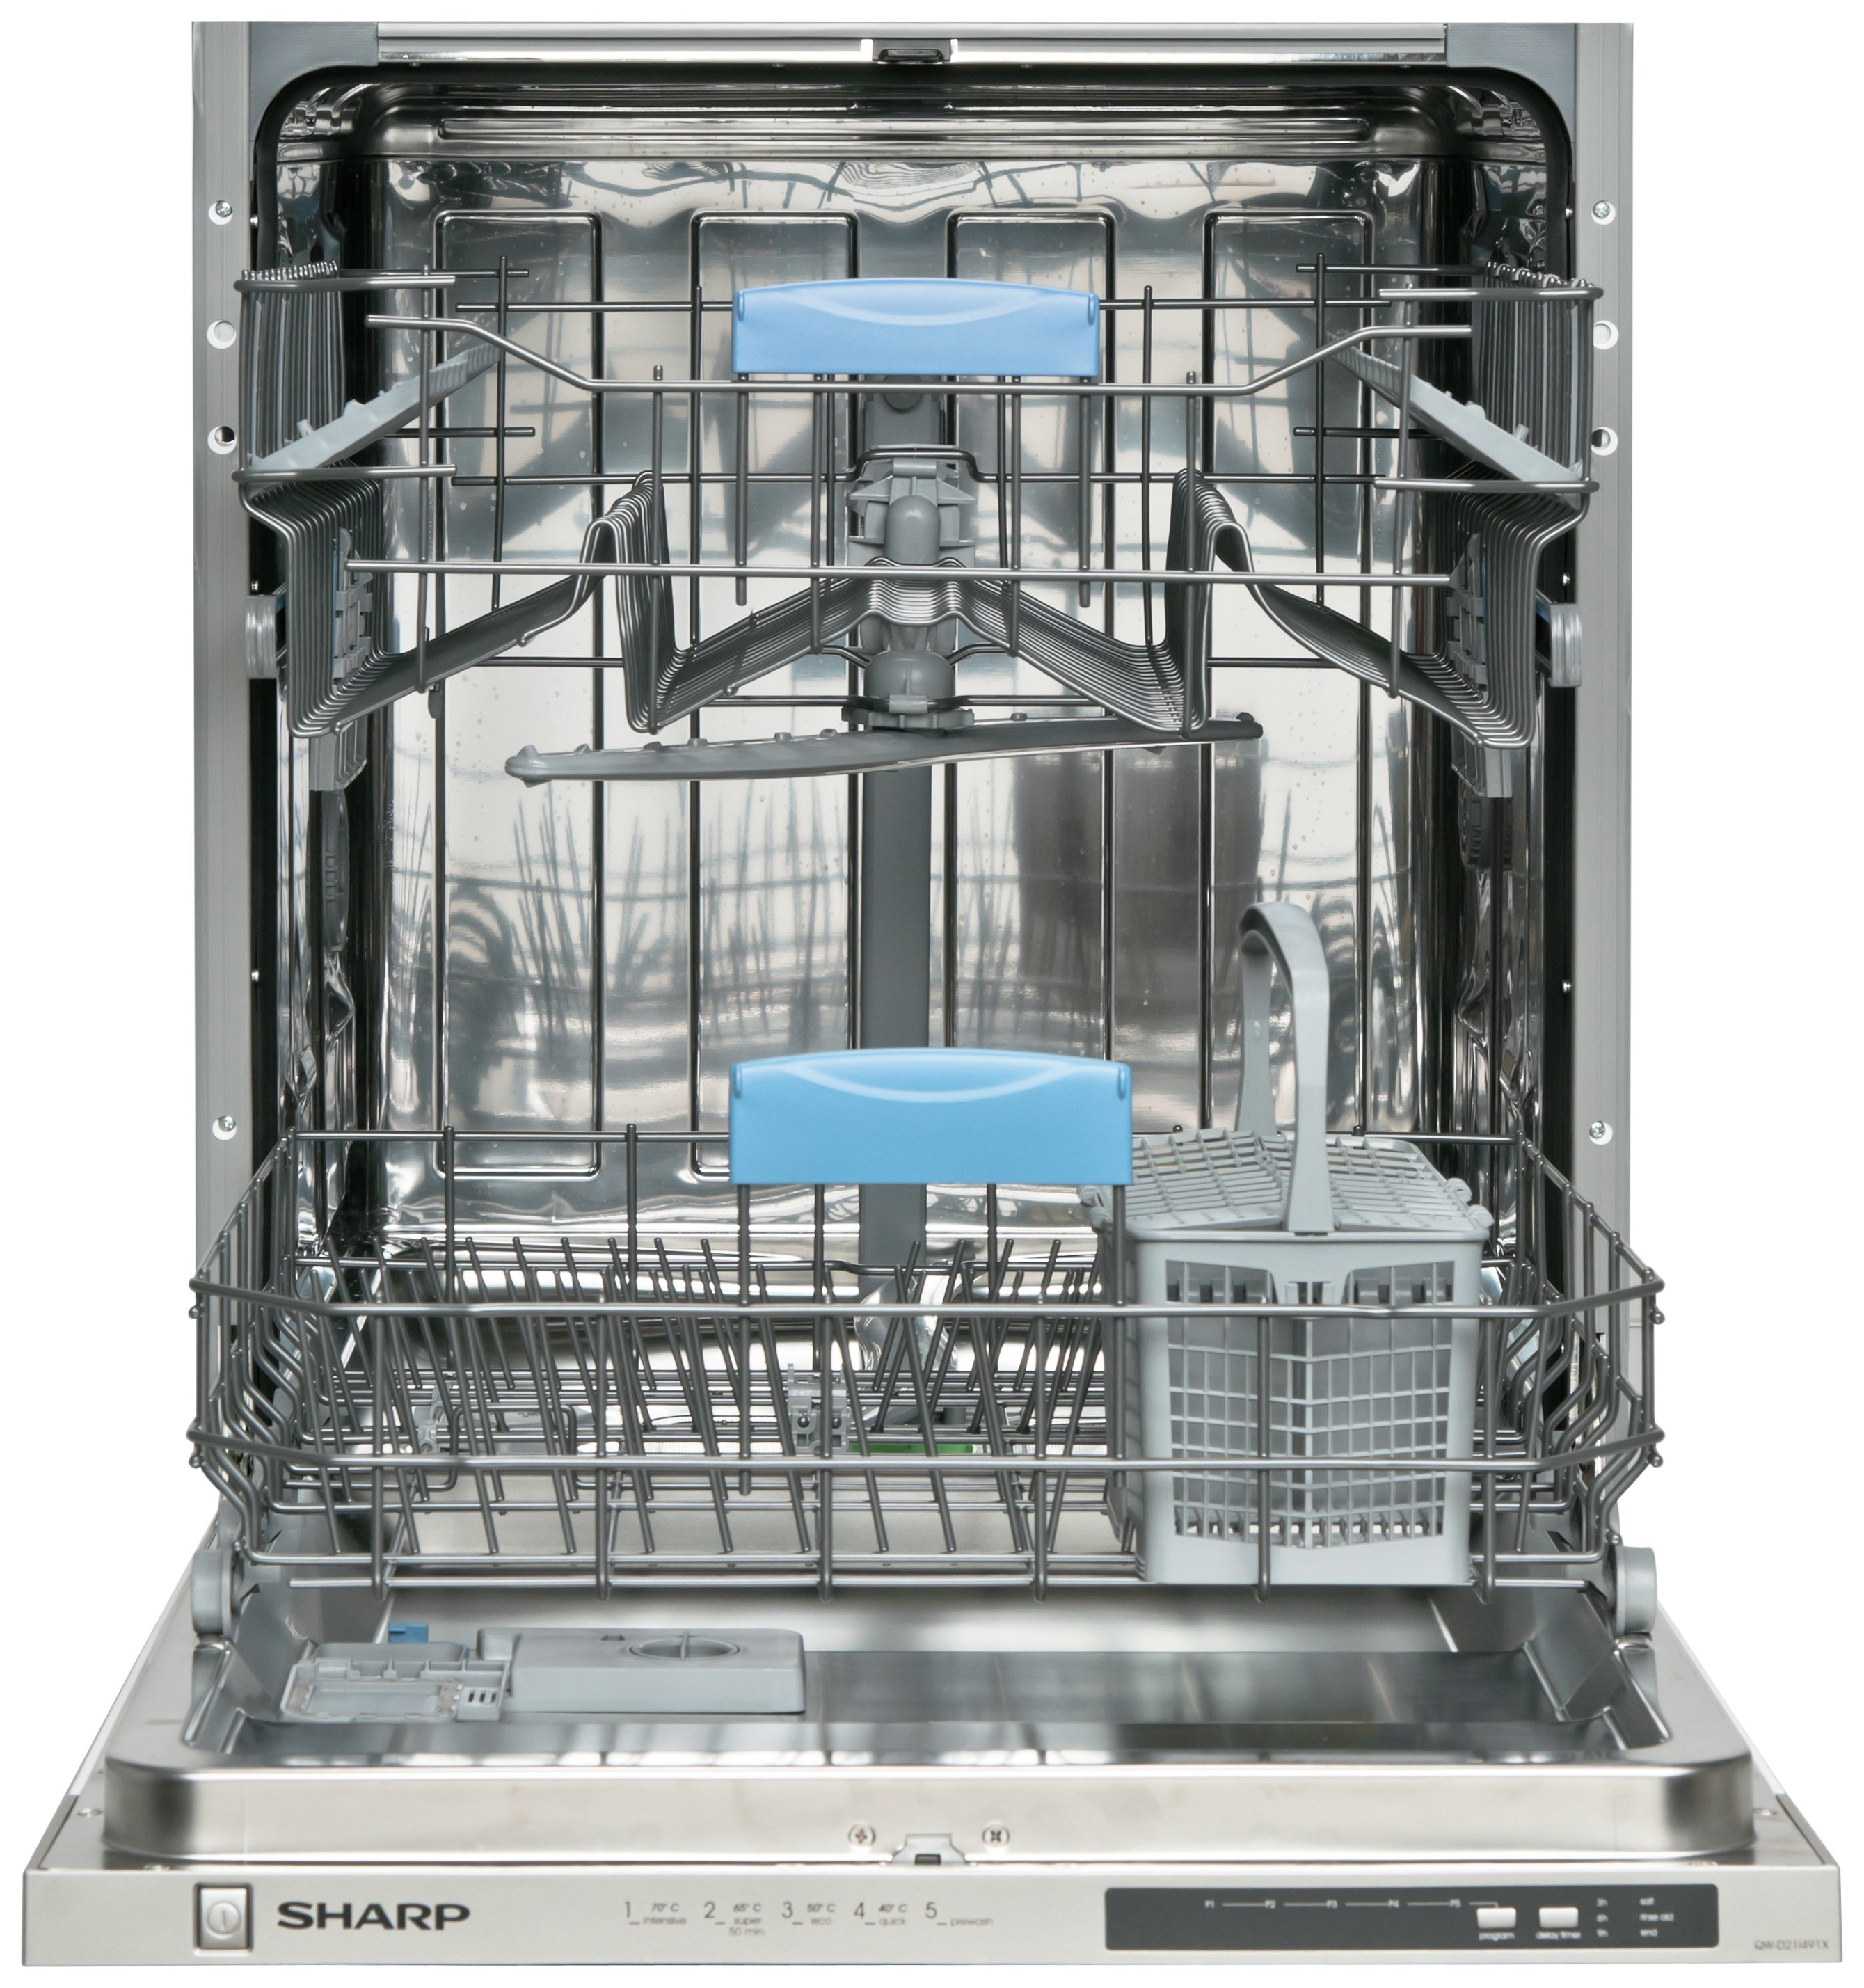 Image of Sharp D21I492X Dishwasher.